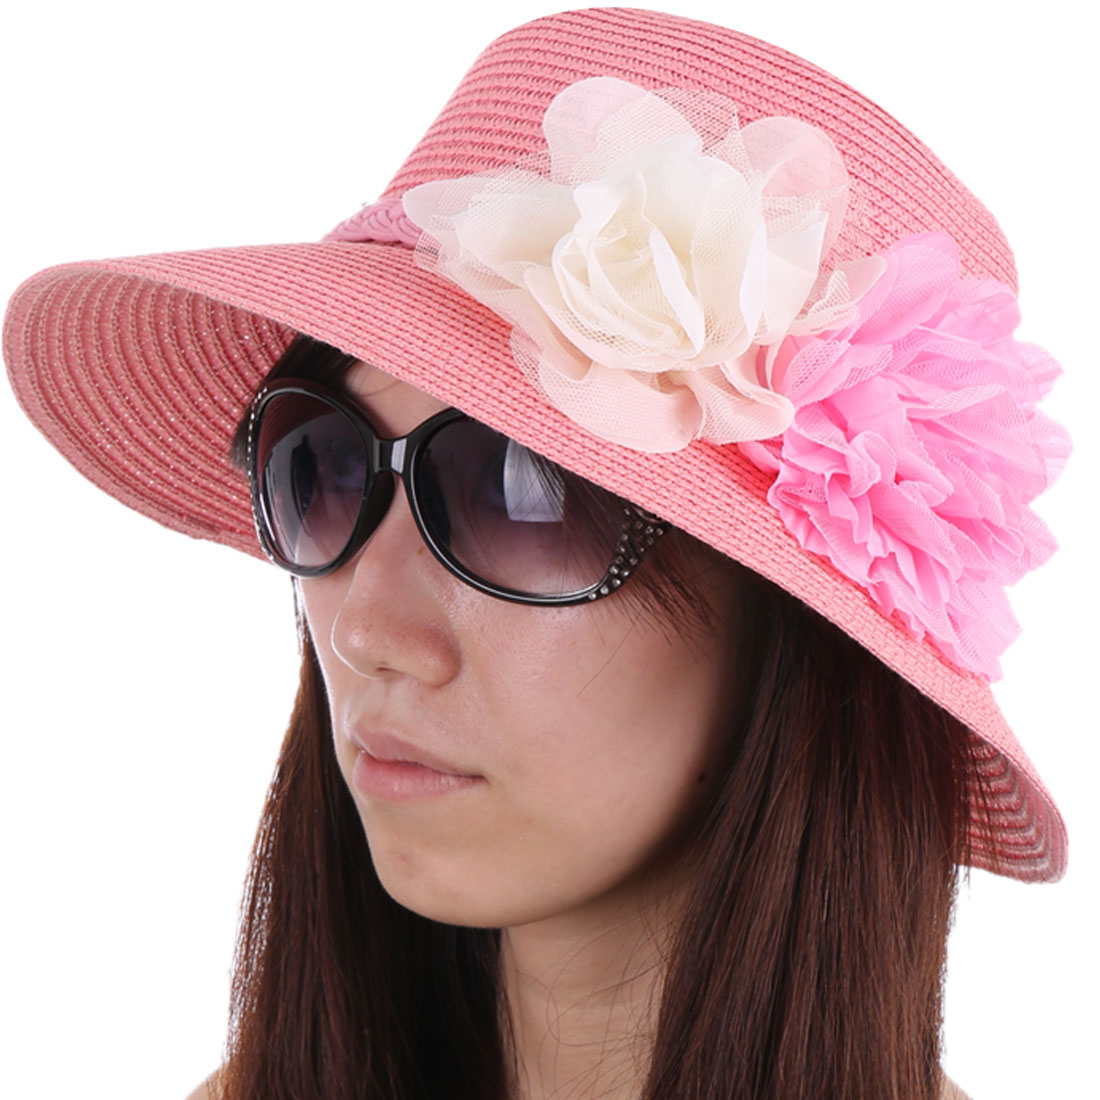 Women Pretty Pink Color Handmade Flowers Decor Sun Straw Hat